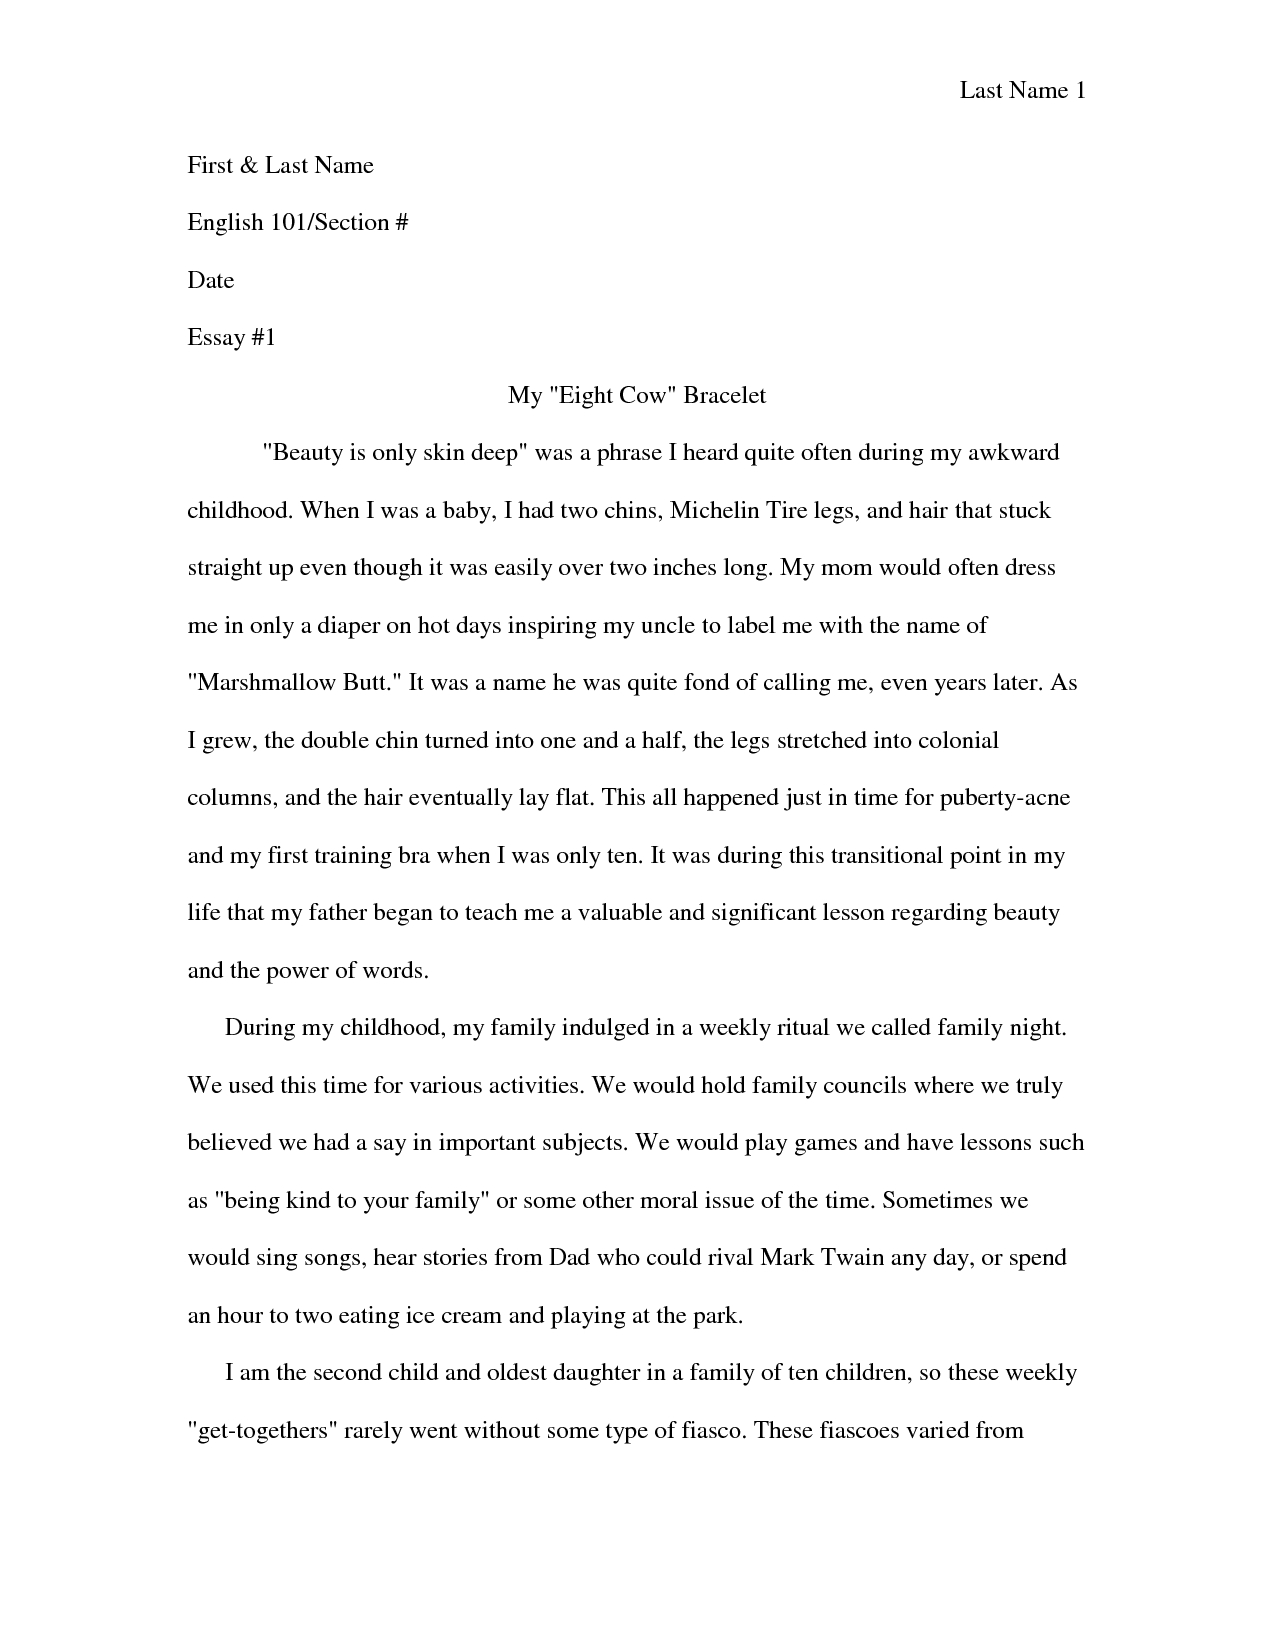 10 Stylish Ideas For A Narrative Essay how to write a narrative essay writing a narrative essay examples 2020